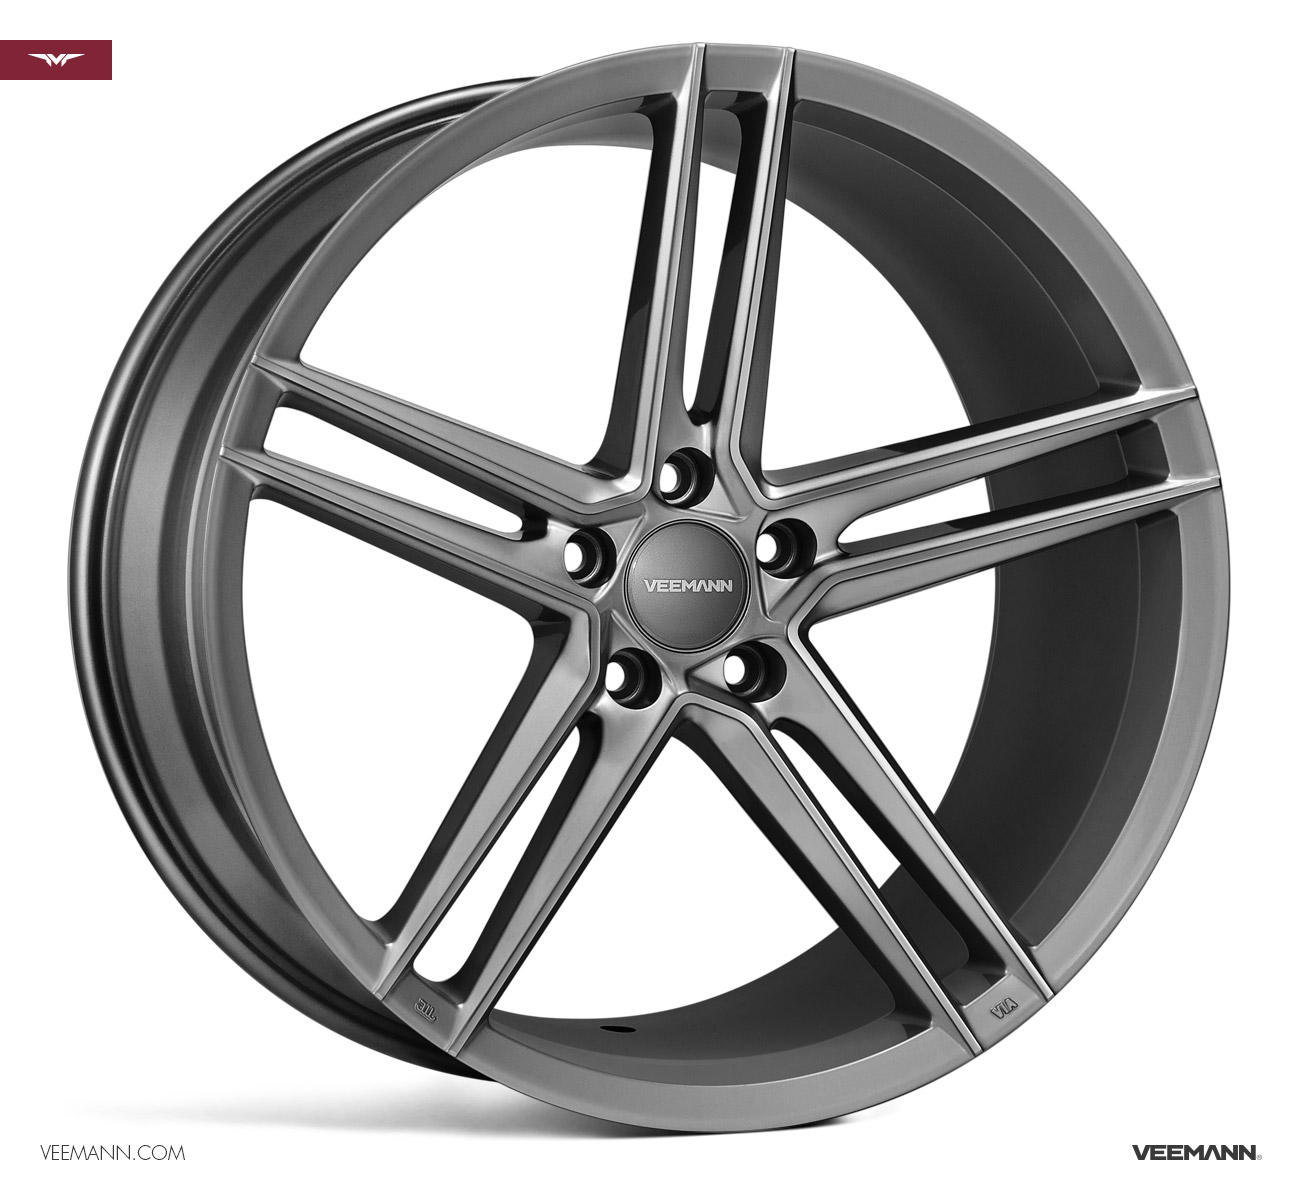 "NEW 21"" VEEMANN V-FS33 ALLOY WHEELS IN GLOSS GRAPHITE WITH WIDER 10.5"" REAR"